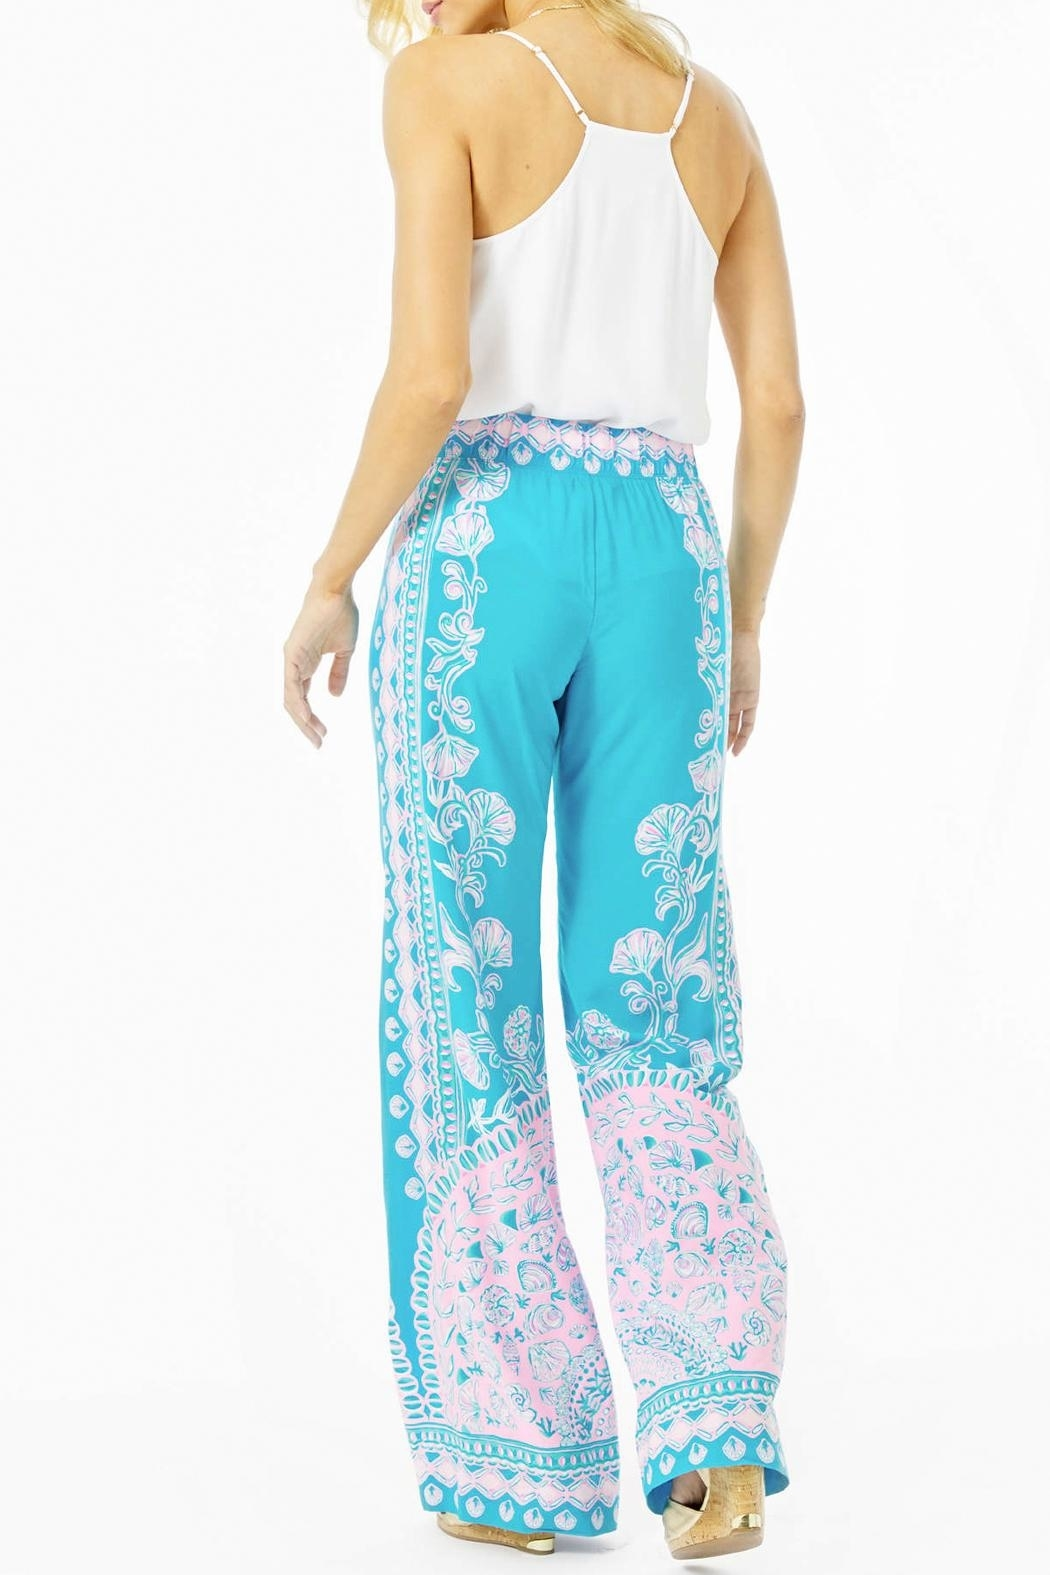 Lilly Pulitzer Bal-Harbour Mid-Rise Palazzo-Pant - Side Cropped Image